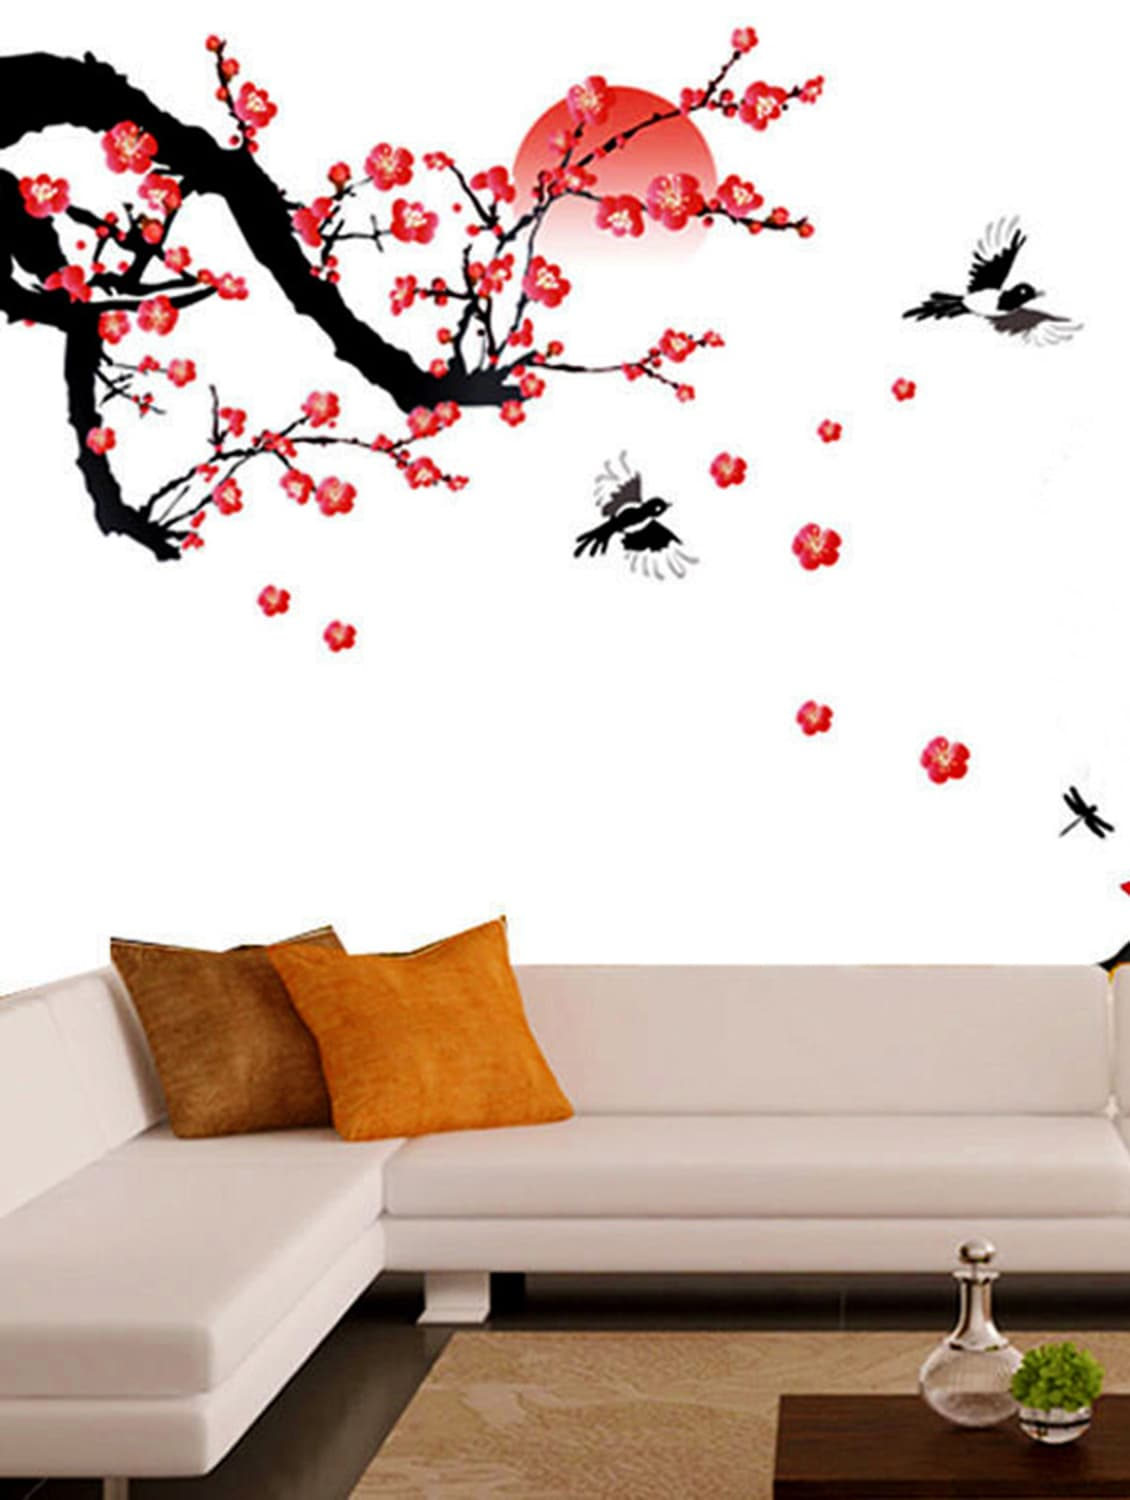 wall stickers living room wallpaper ideas for with dado rail buy decals blossoms and sunset by stikerskart 9725198 zoom image 1